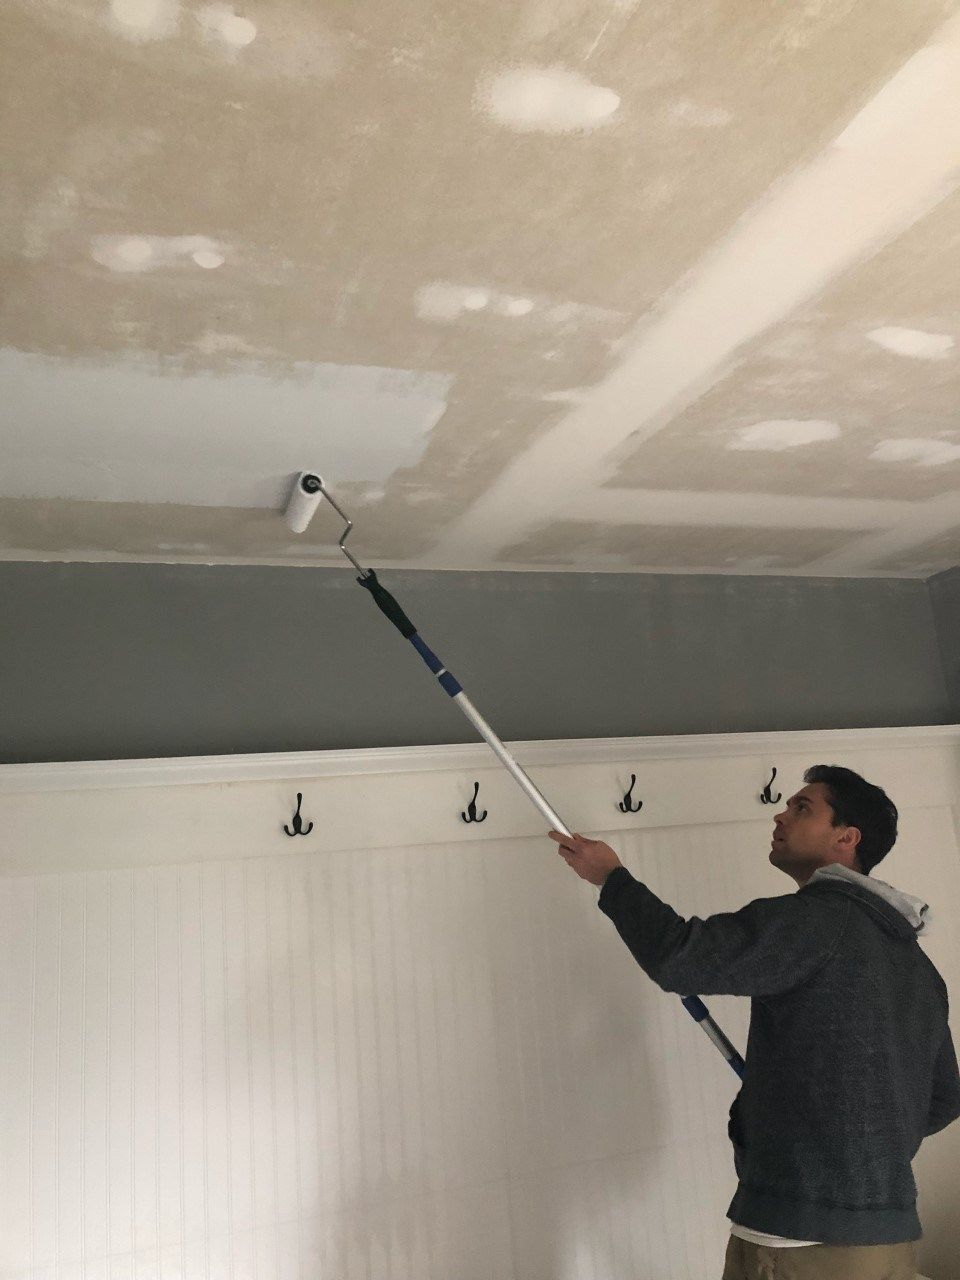 How To Remove Popcorn Ceilings Like A Pro Smoothing Textured Ceilings Removing Popcorn Ceiling Ceiling Texture Popcorn Ceiling